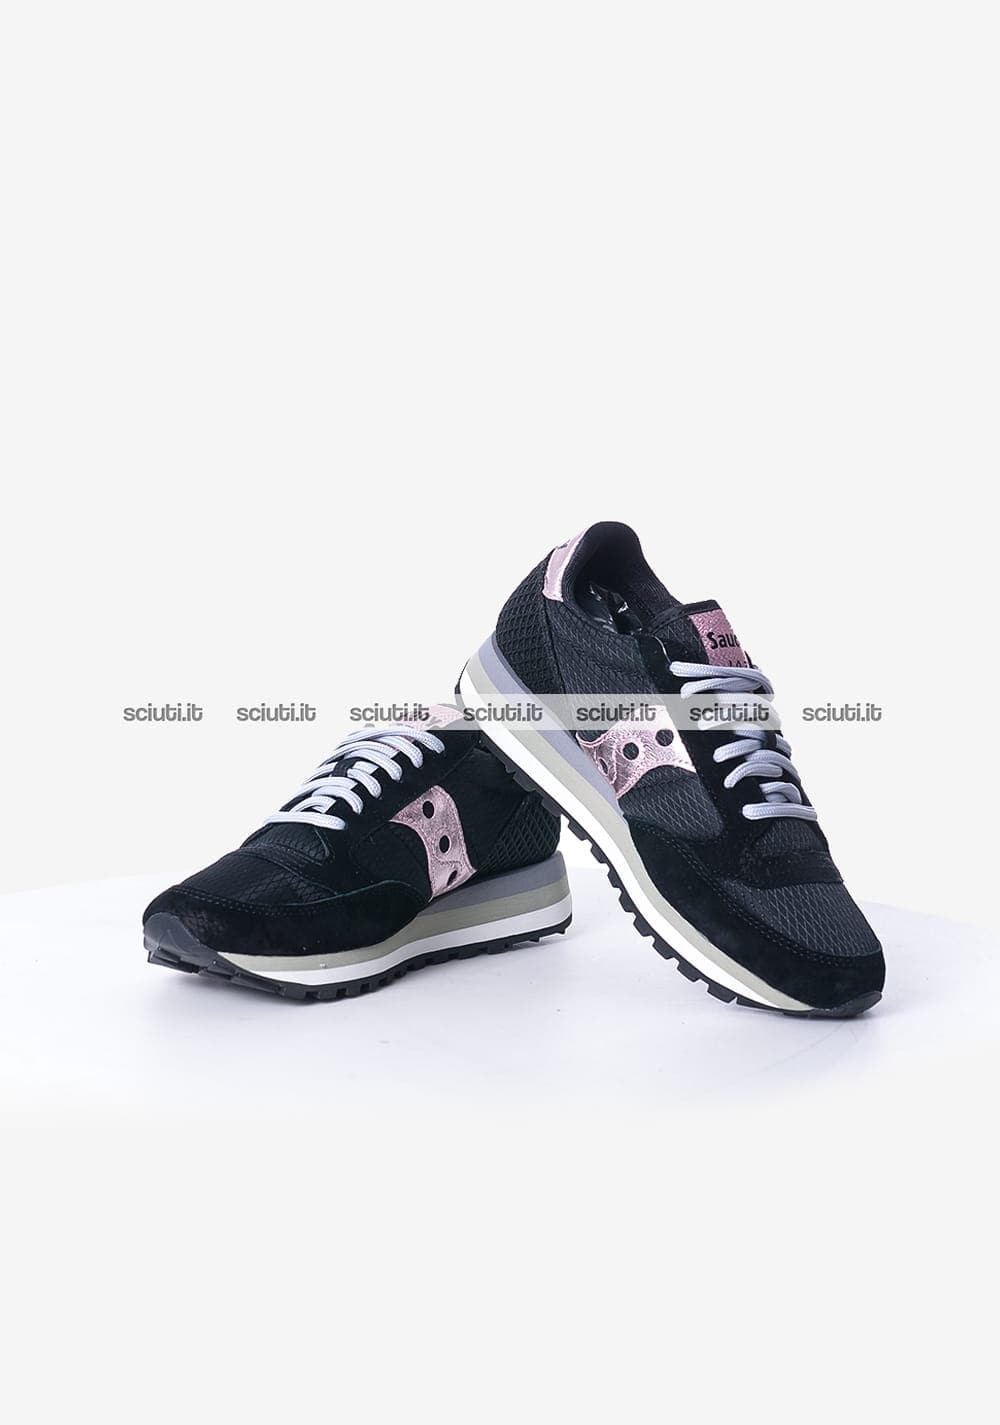 best website b764f f0f28 Scarpe Saucony donna Jazz Triple Limited Edition nero rosa ...